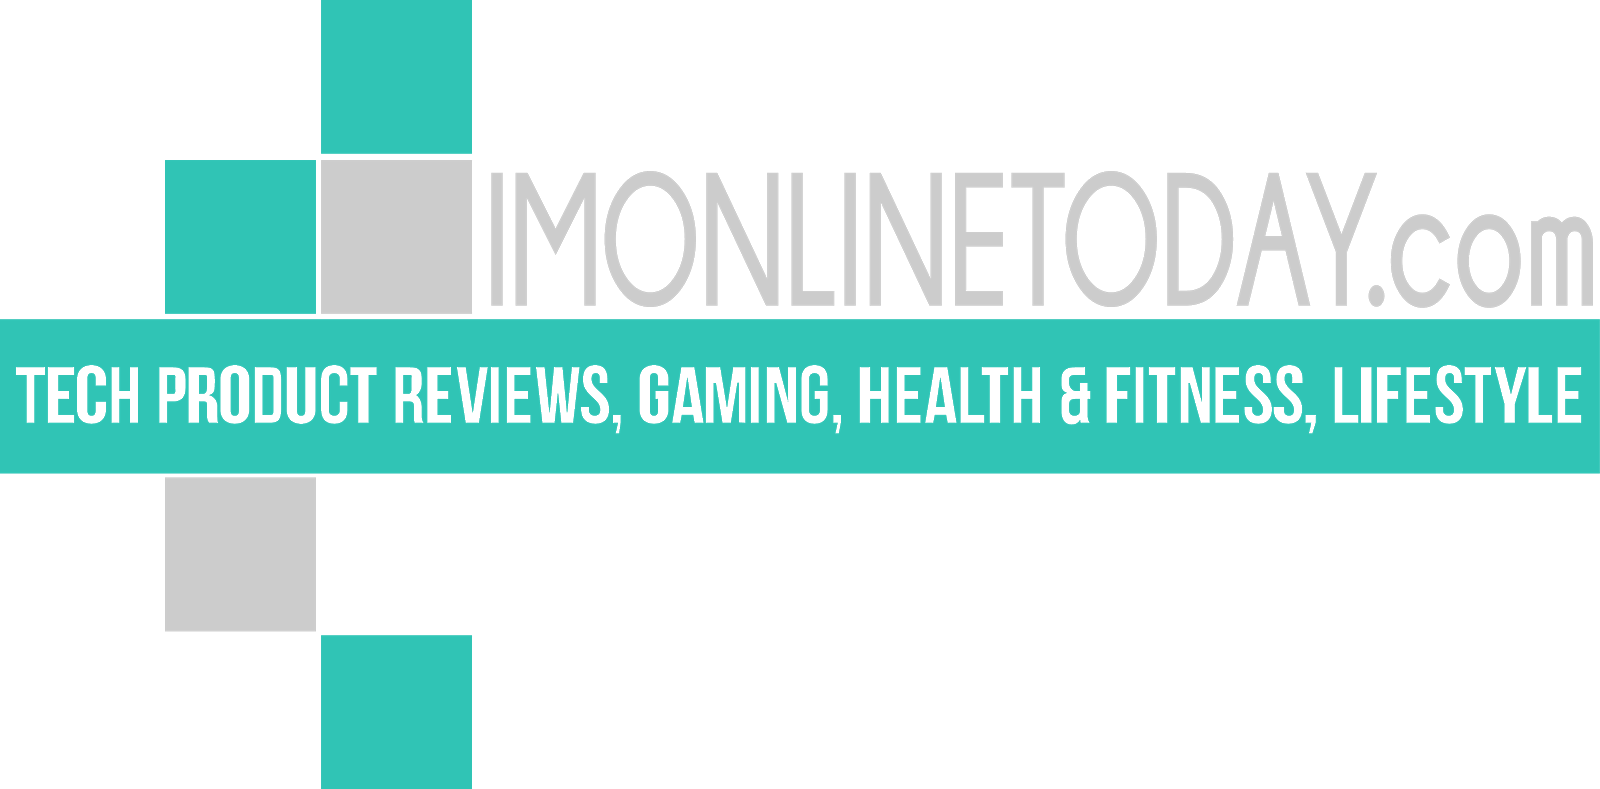 OnlineToday: Tech Product Reviews, Gaming, Tutorials, Health and Fitness